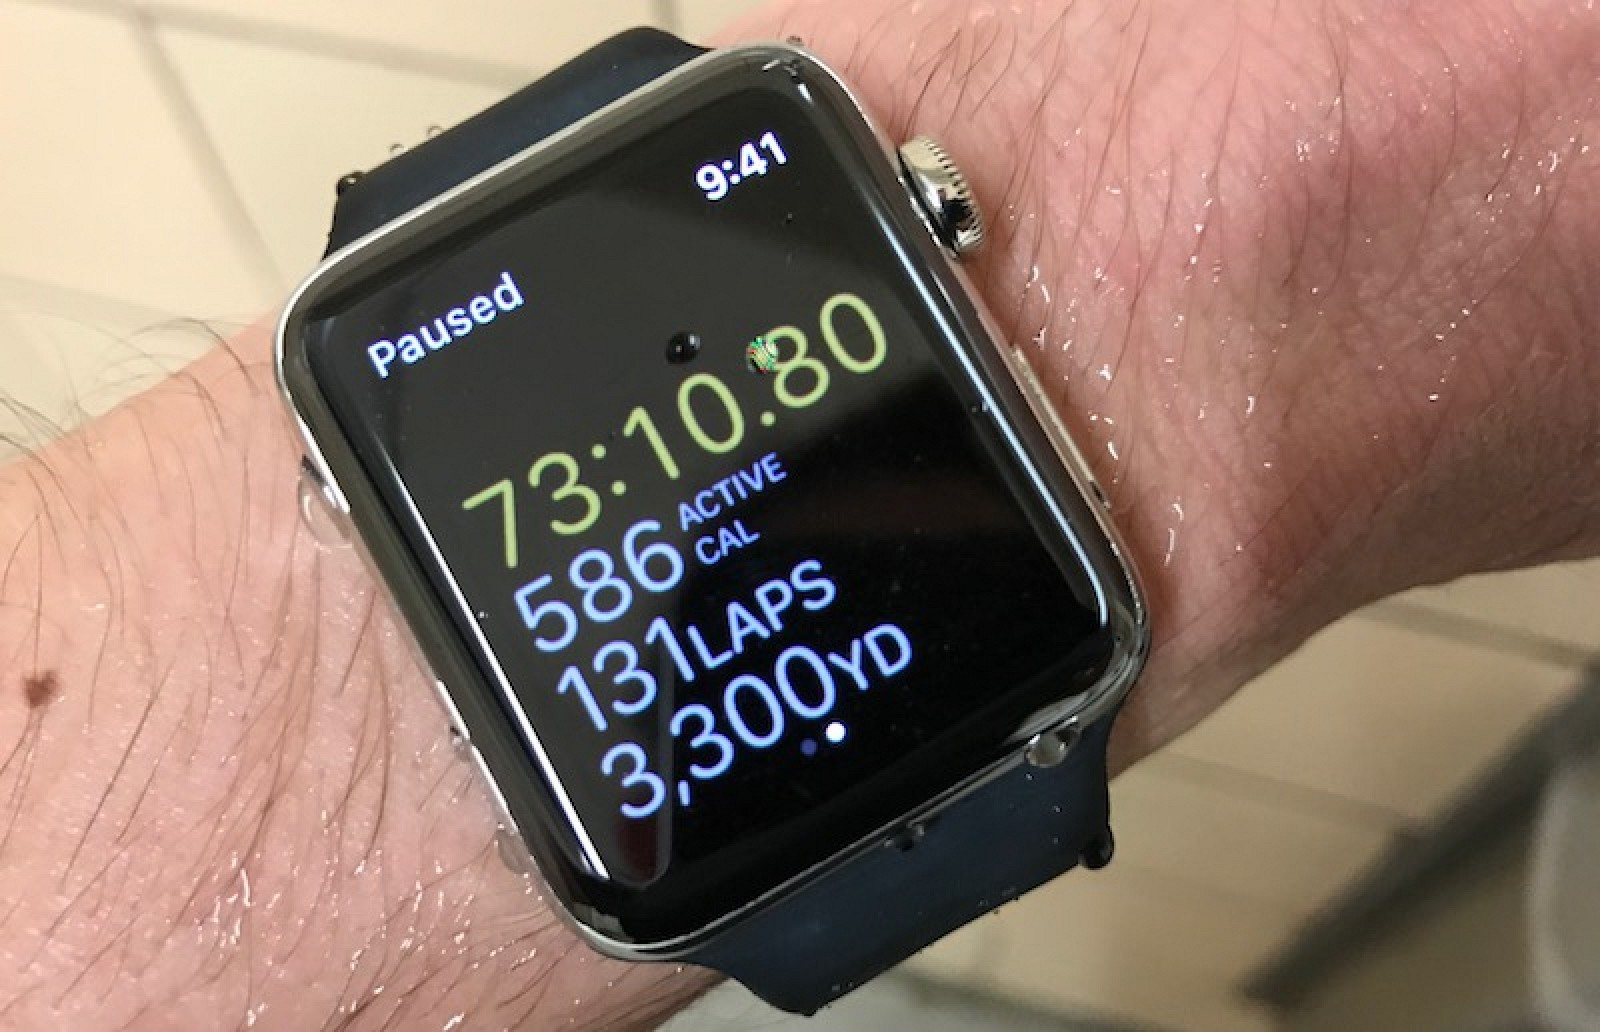 Apple Watch Series 2: A Swimmer's Perspective